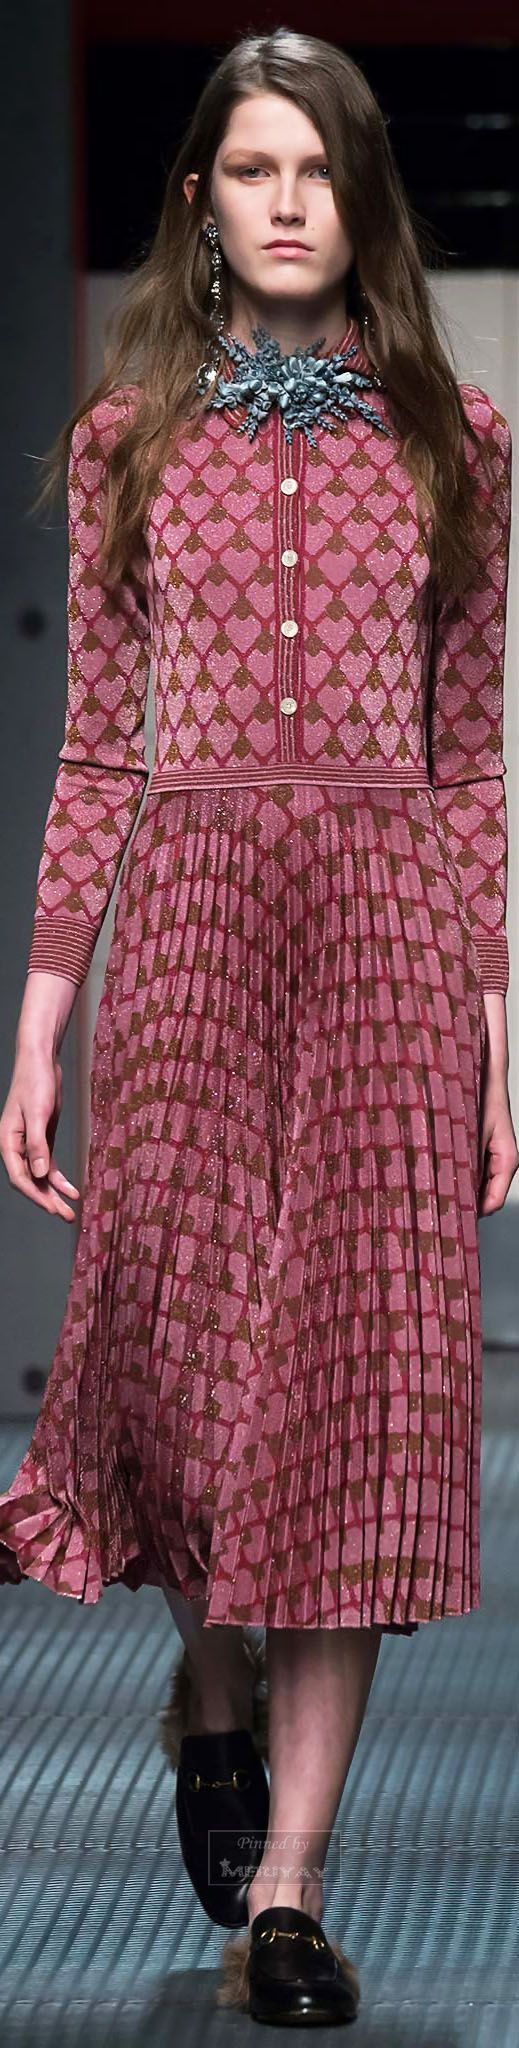 Gucci.Fall 2015. Hearts patterns, statement brooche, chandelier earrings, messy long hair, pink hearts ...